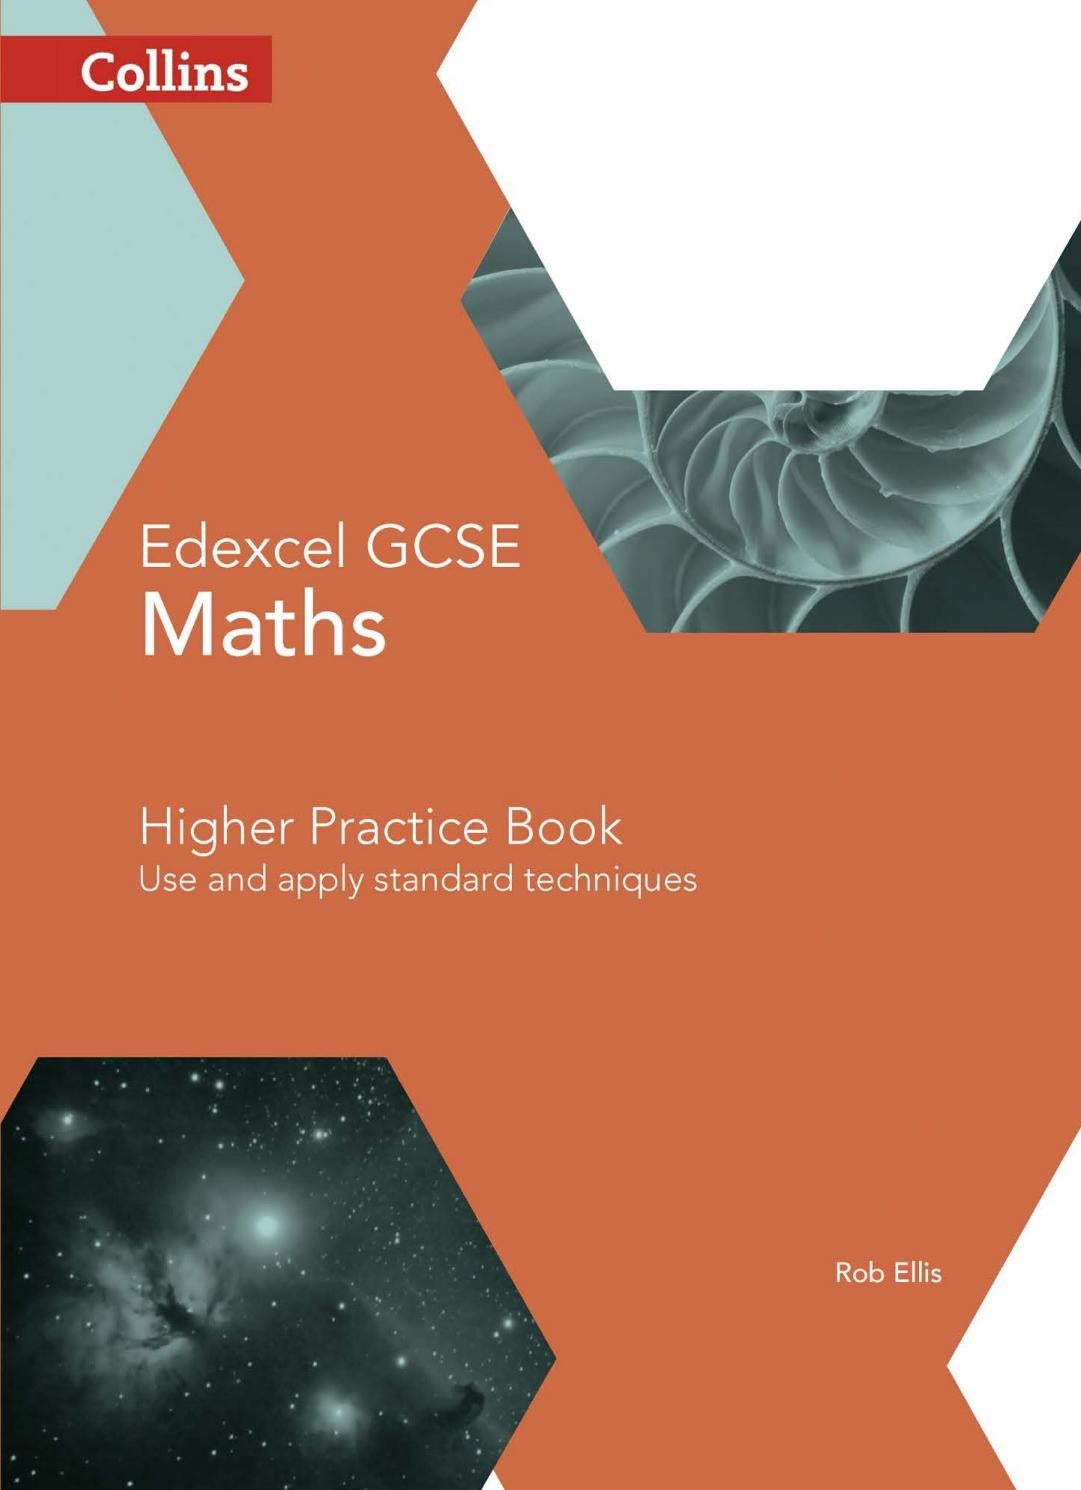 Edexcel gcse maths higher practice book by collins issuu falaconquin